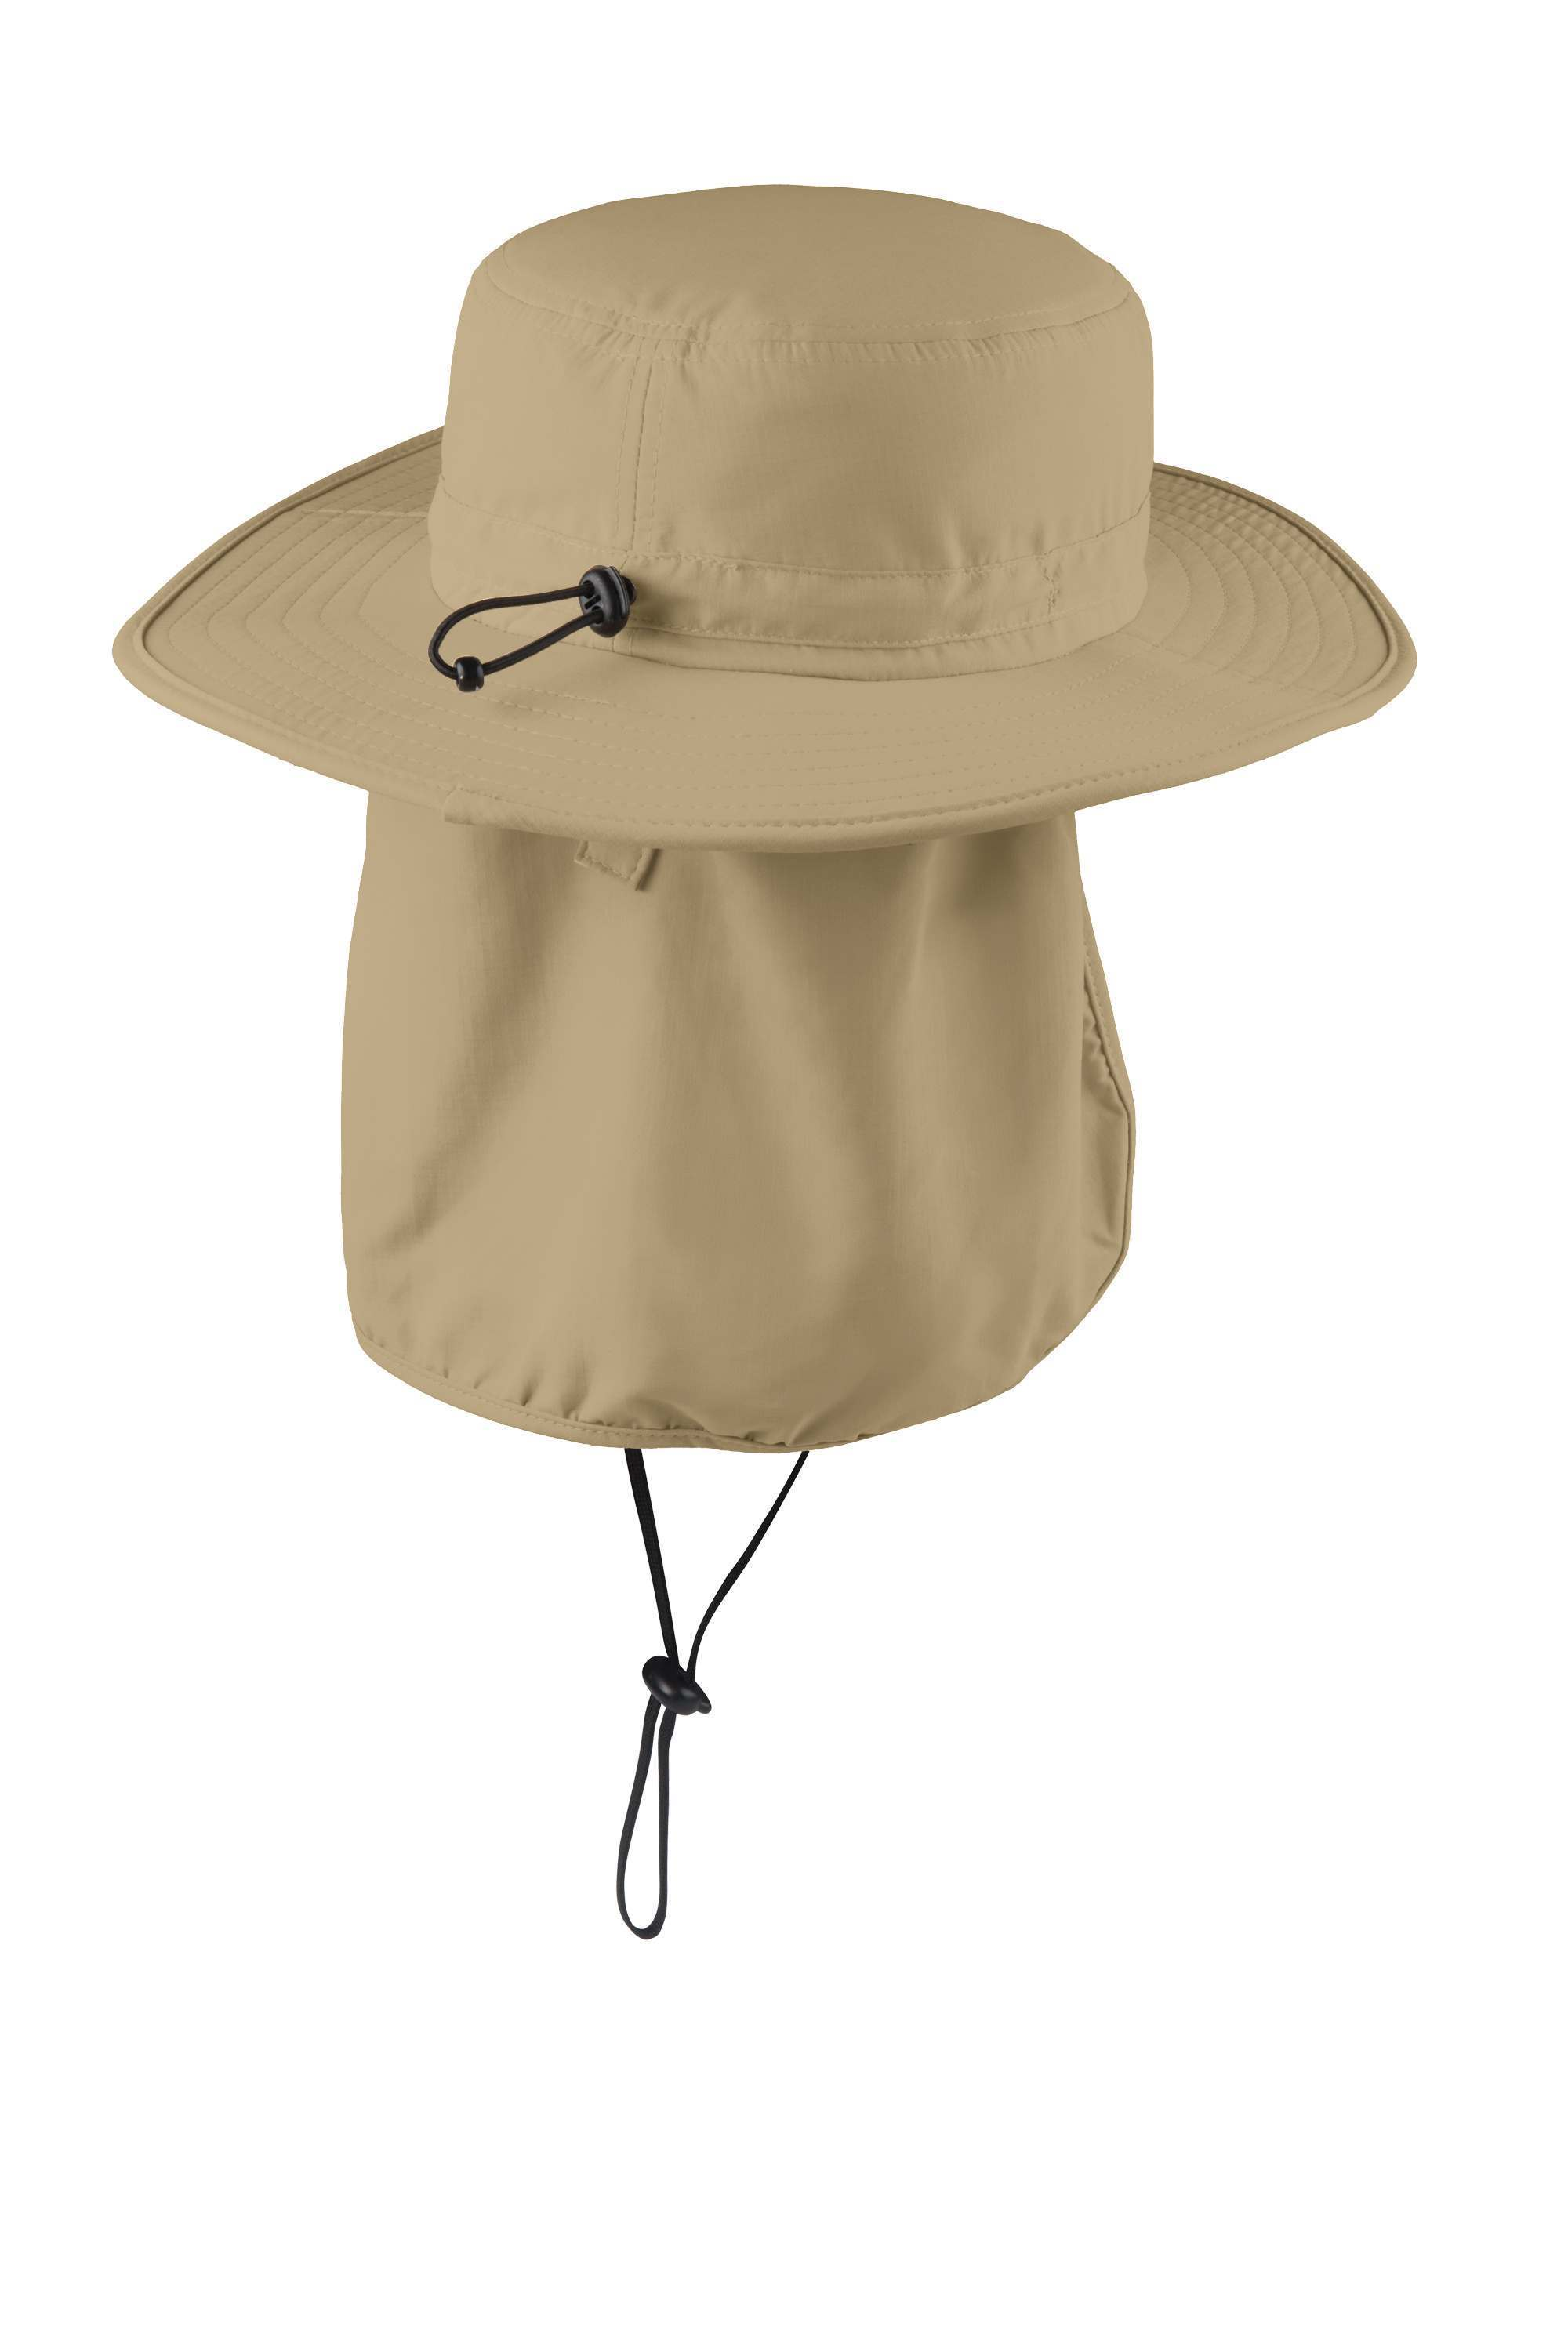 94f03001fb2 Port Authority® Outdoor Wide-Brim Hat - Port Authority - Brands